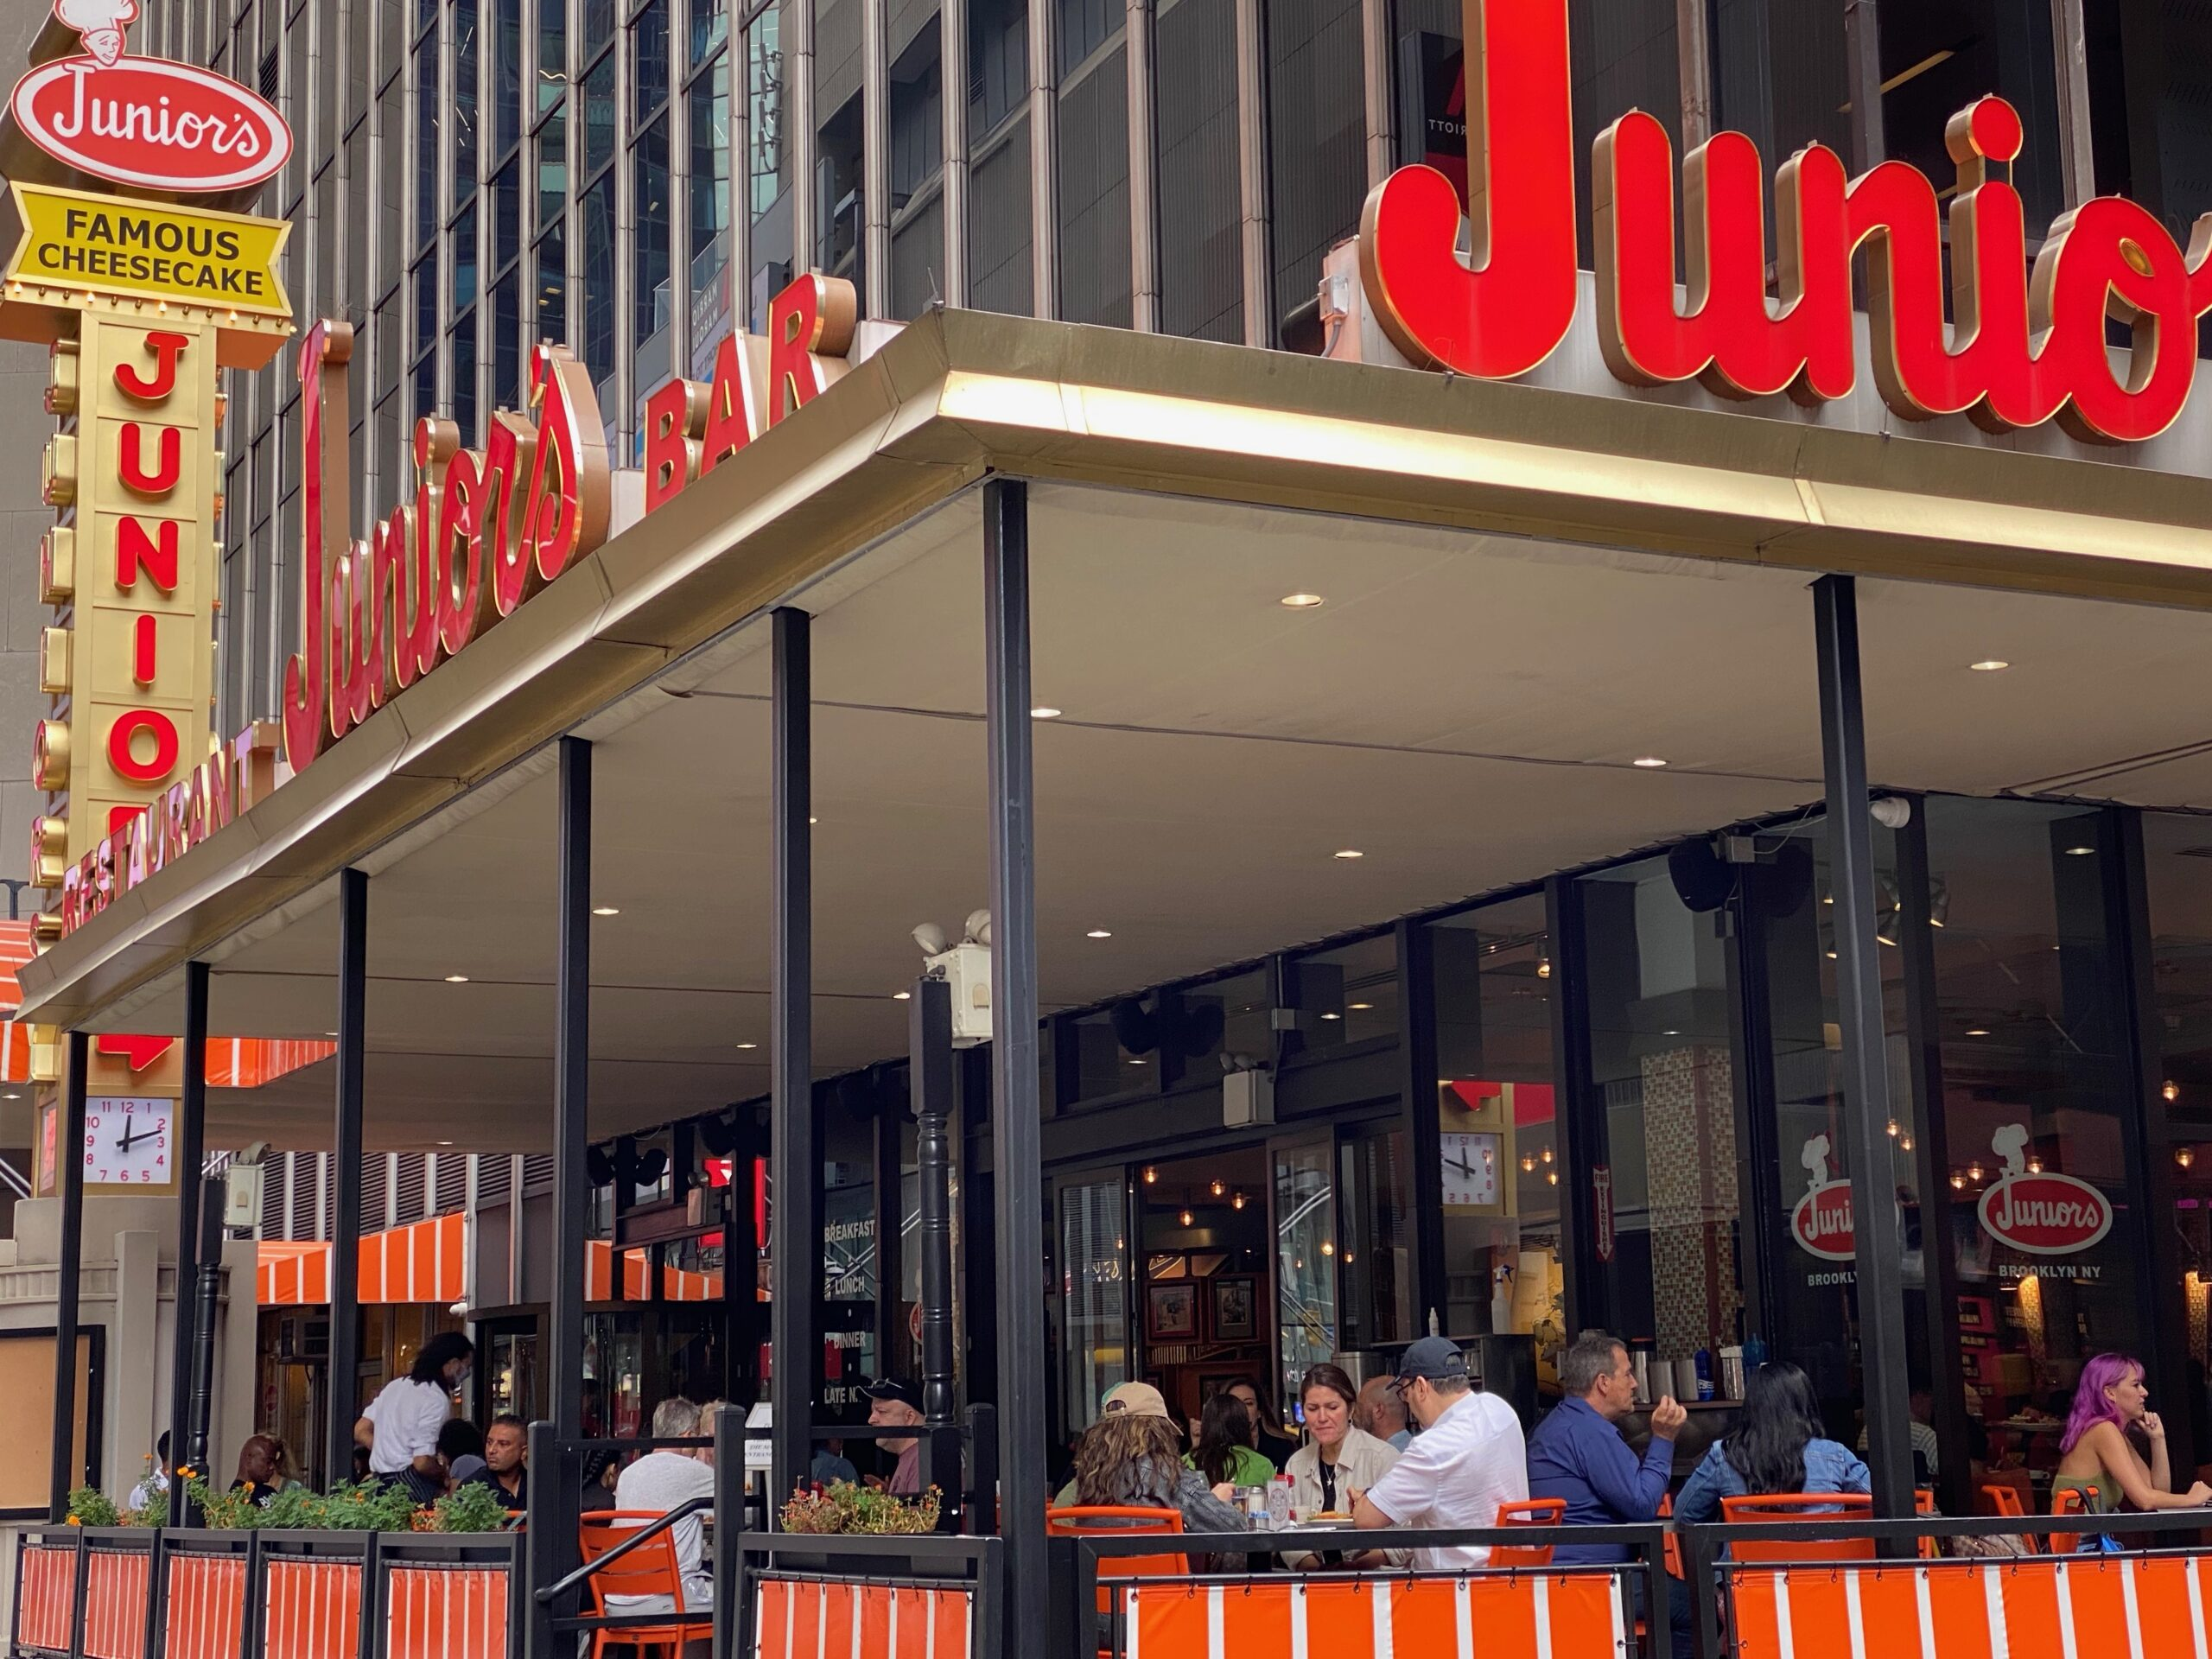 Junior's restaurant in Times Square NYC